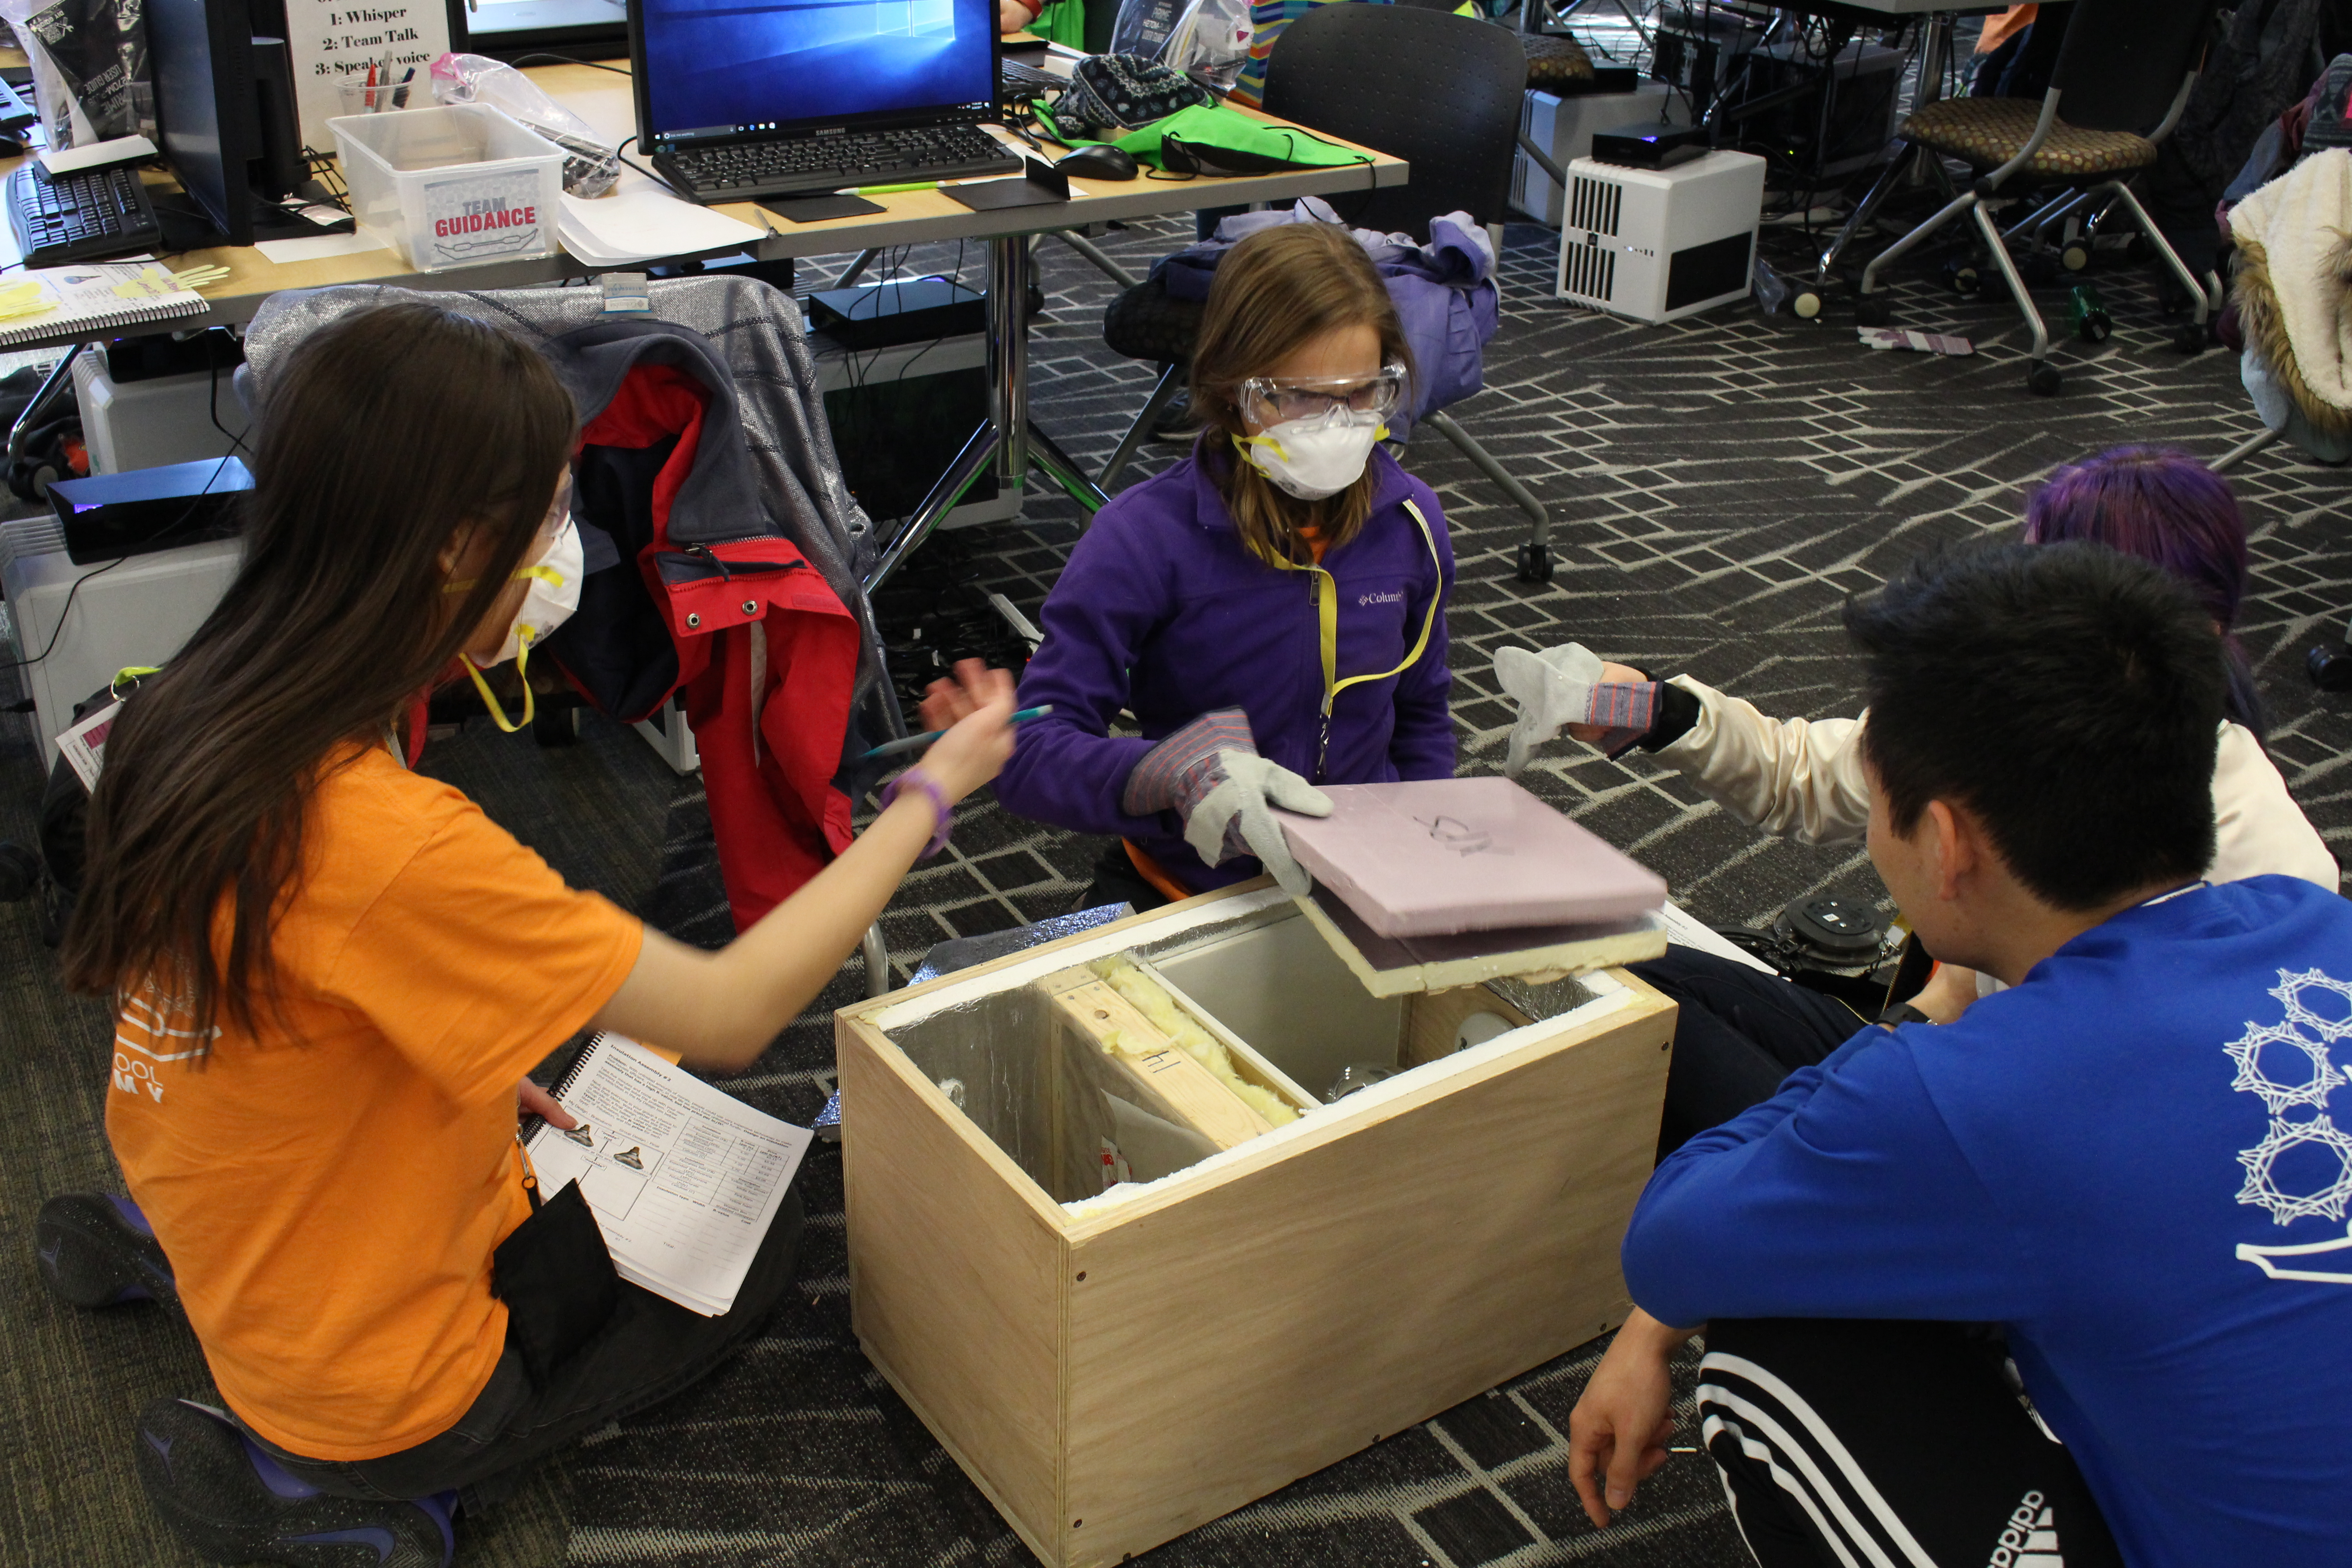 SStudents work on a box